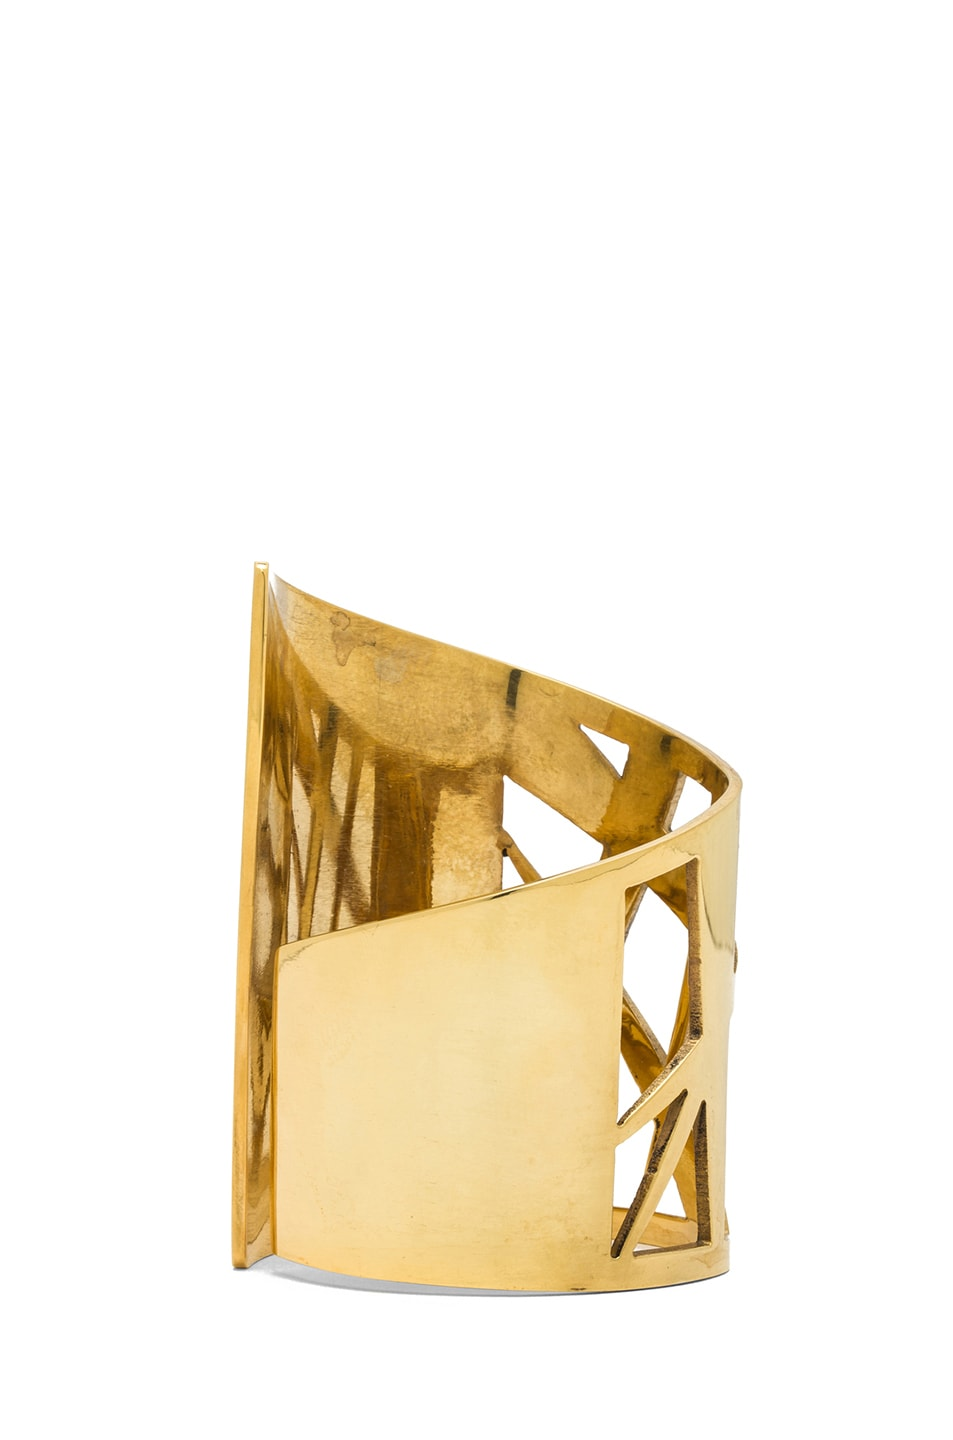 Image 2 of Kelly Wearstler Intersecting Cuff in Gold